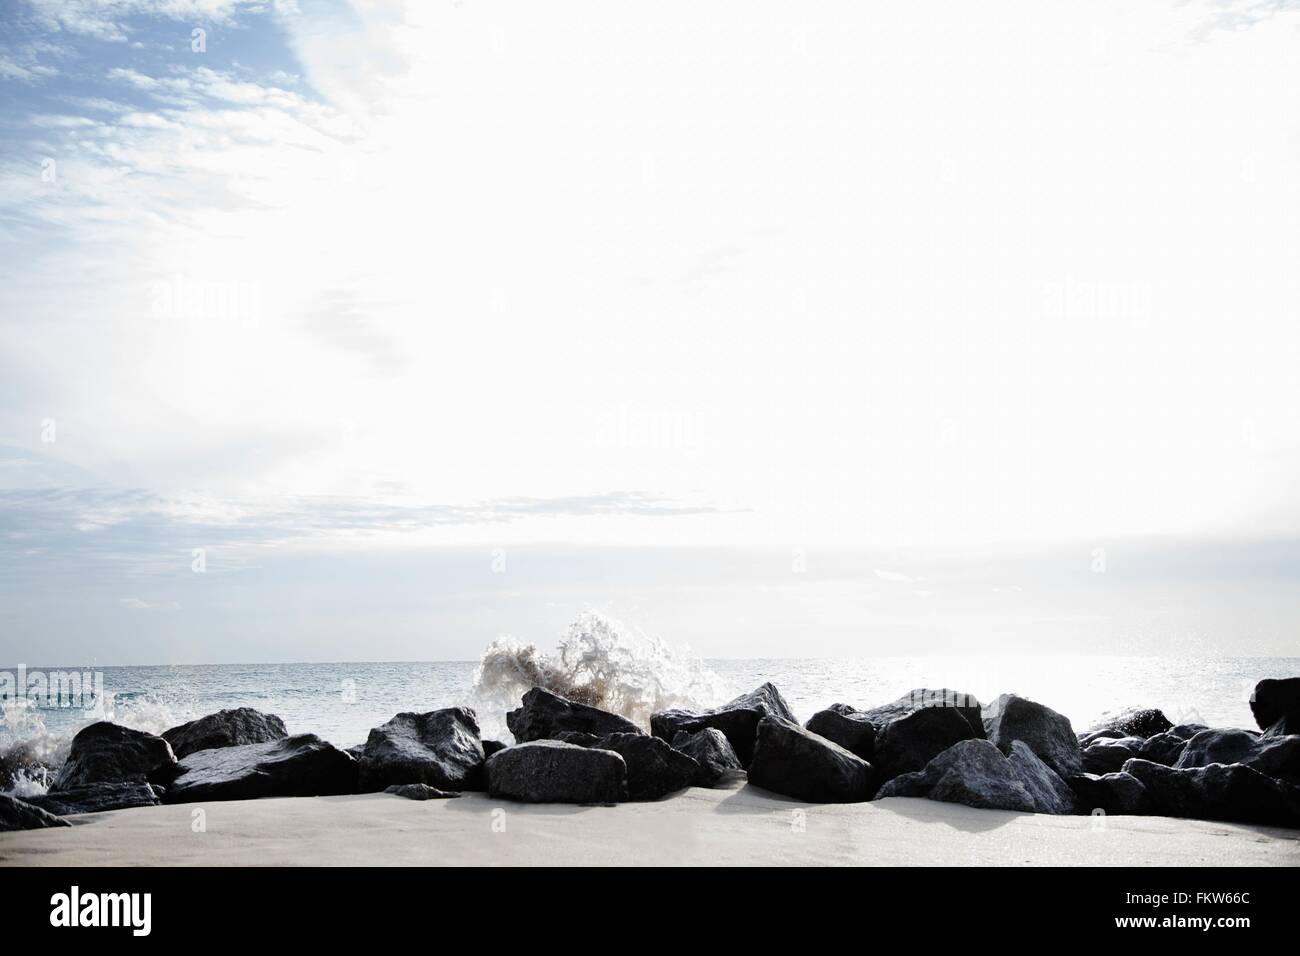 Rocks acting as breakers on Palm Beach, Florida, USA - Stock Image